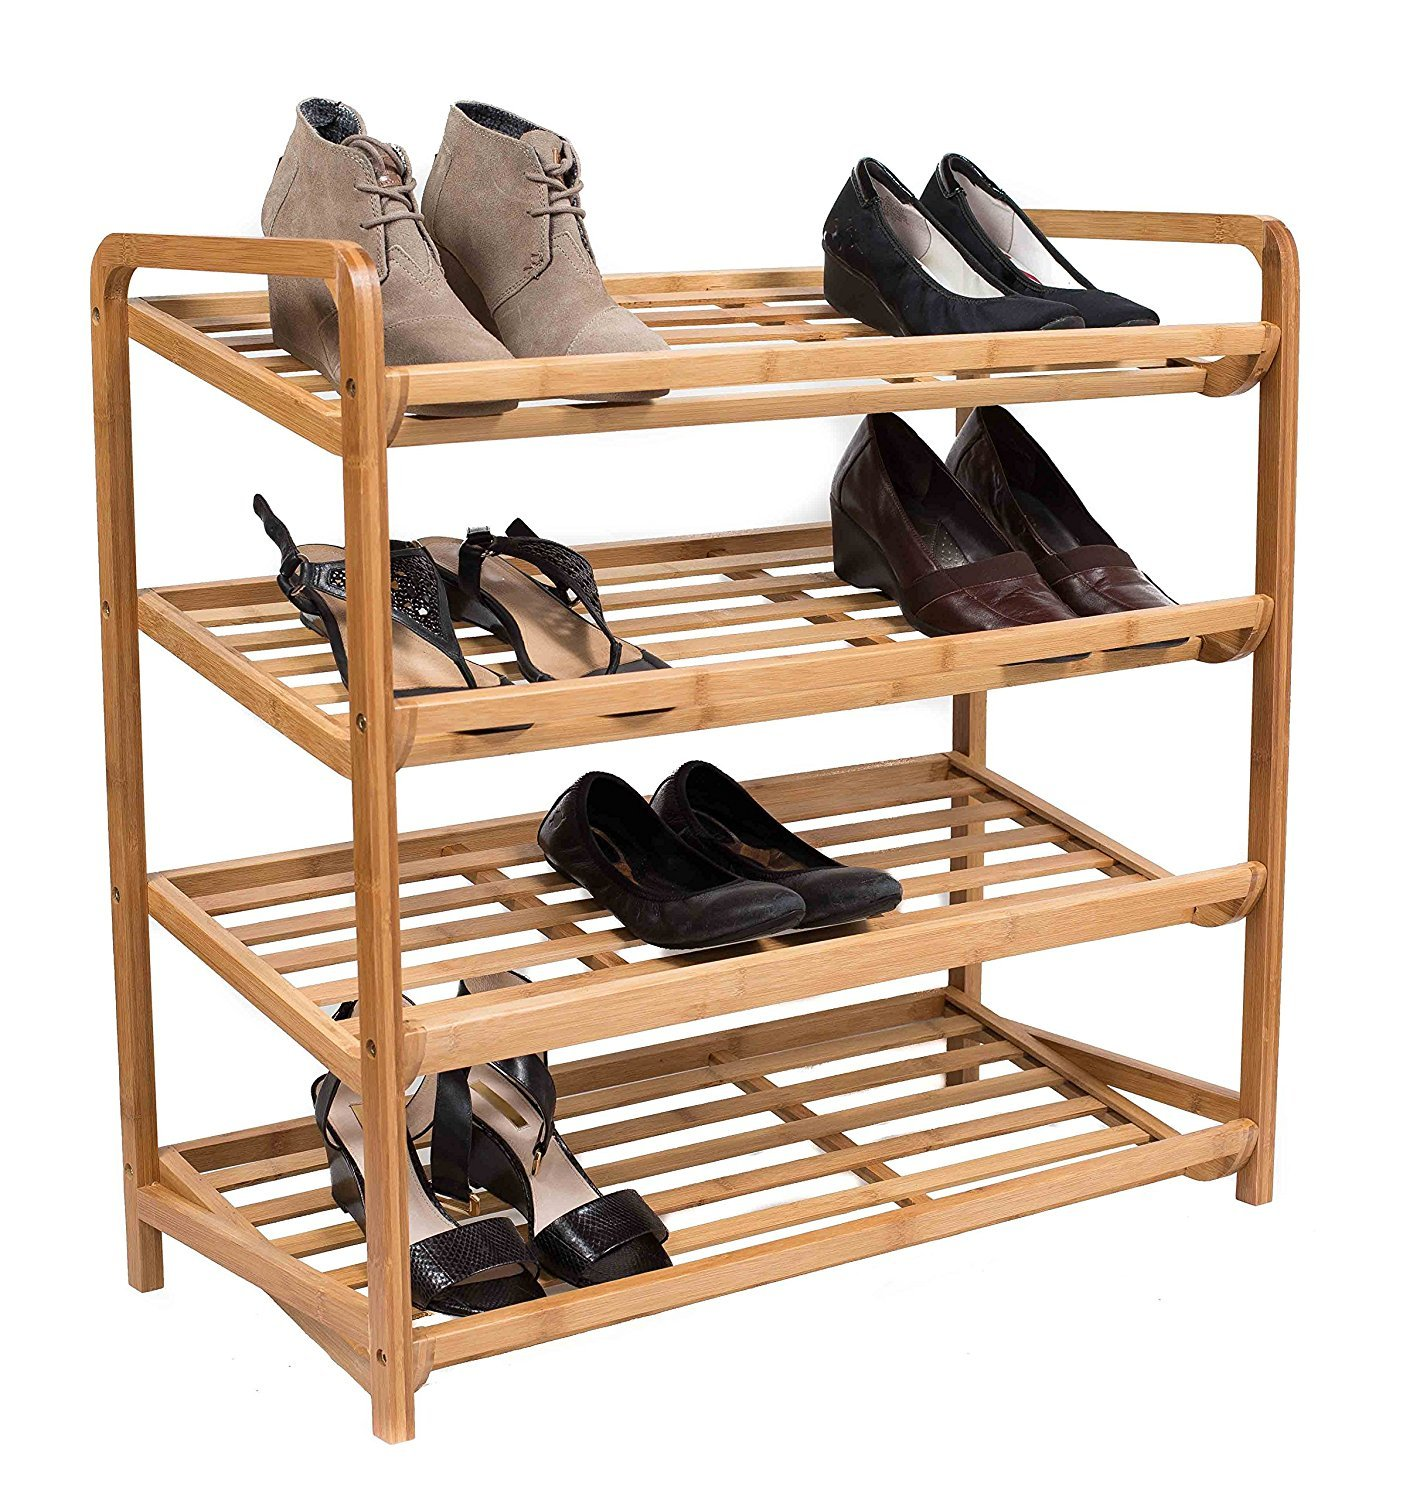 BirdRock Home 4 Tier Bamboo Shoe Rack - Home Storage Organization - Natural Durable Environmentally Friendly Organizer - Fits 9-12 Shoes by BIRDROCK HOME